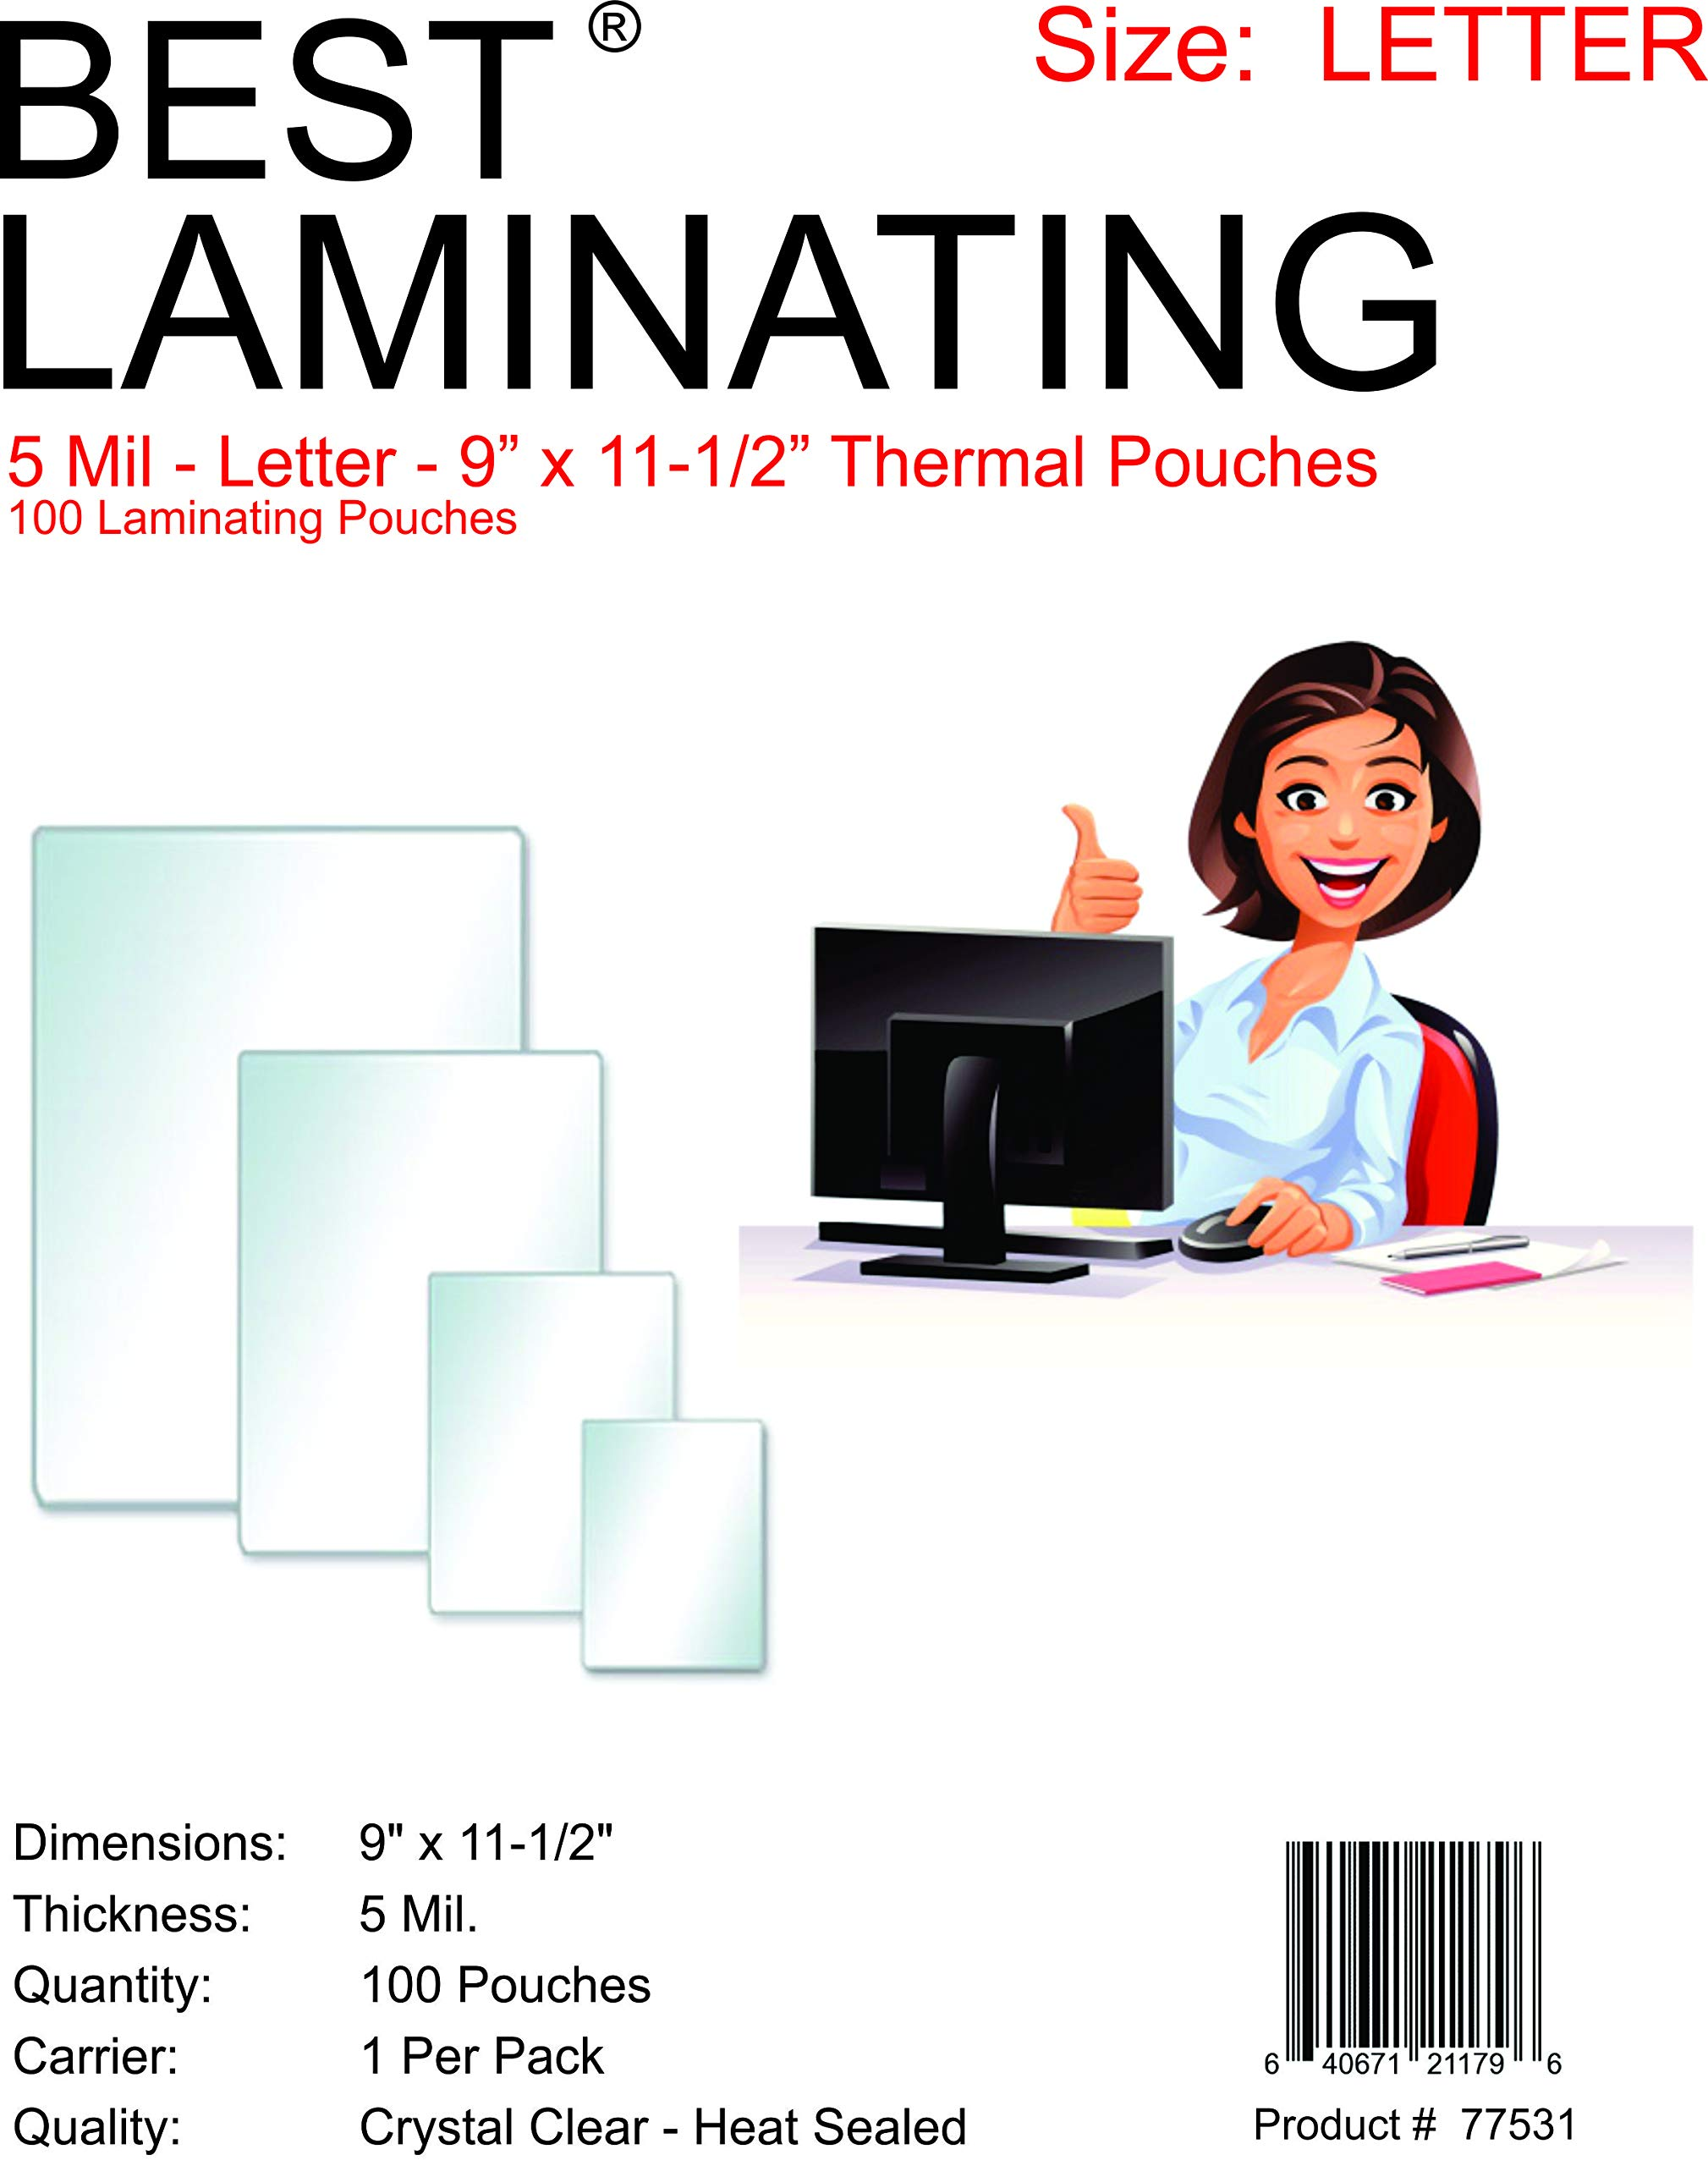 Laminating Pouches Best Laminating 5 Mil Clear Letter Size Thermal 9 X 11.5 Inches Qty 100 by Best Print